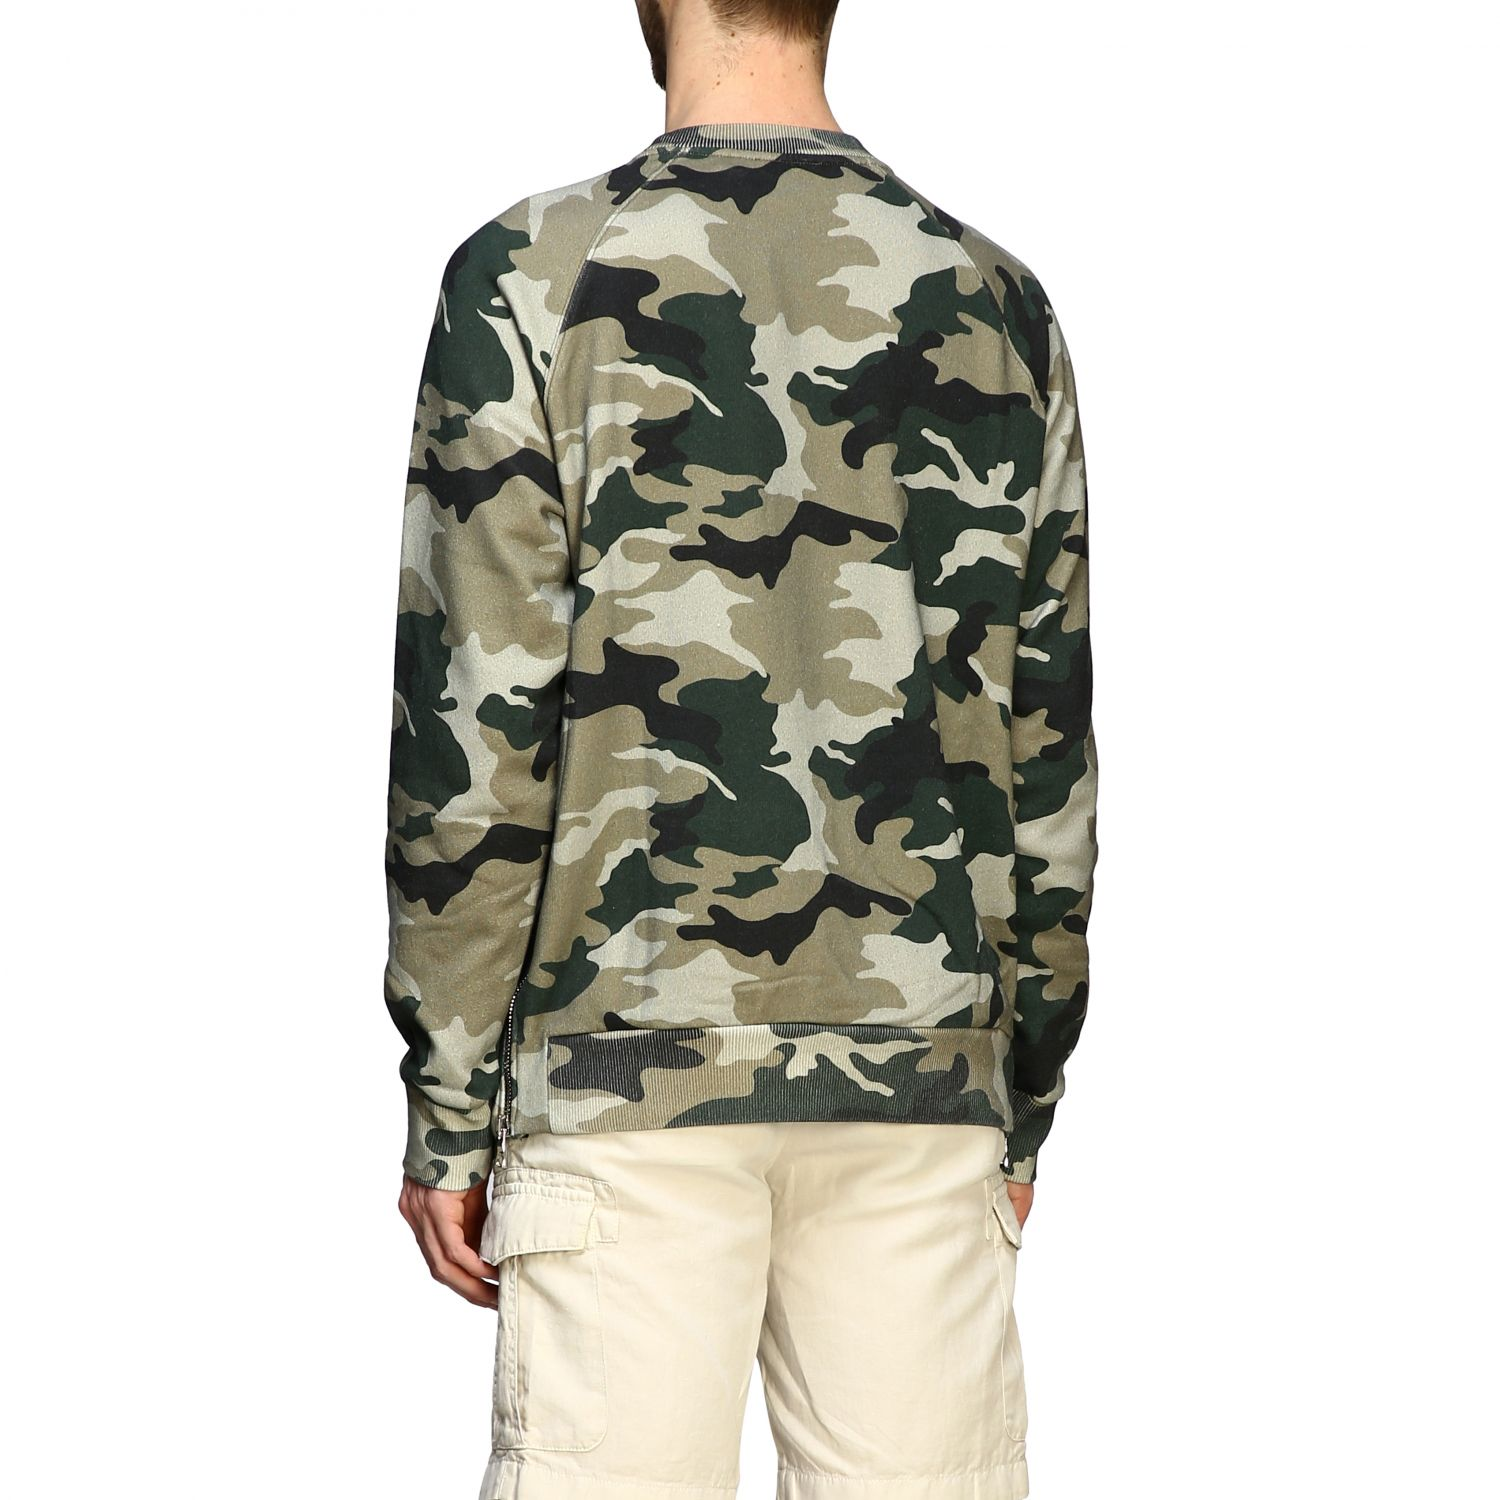 Sweatshirt Balmain: Balmain camouflage sweatshirt with flocked logo and zip military 3